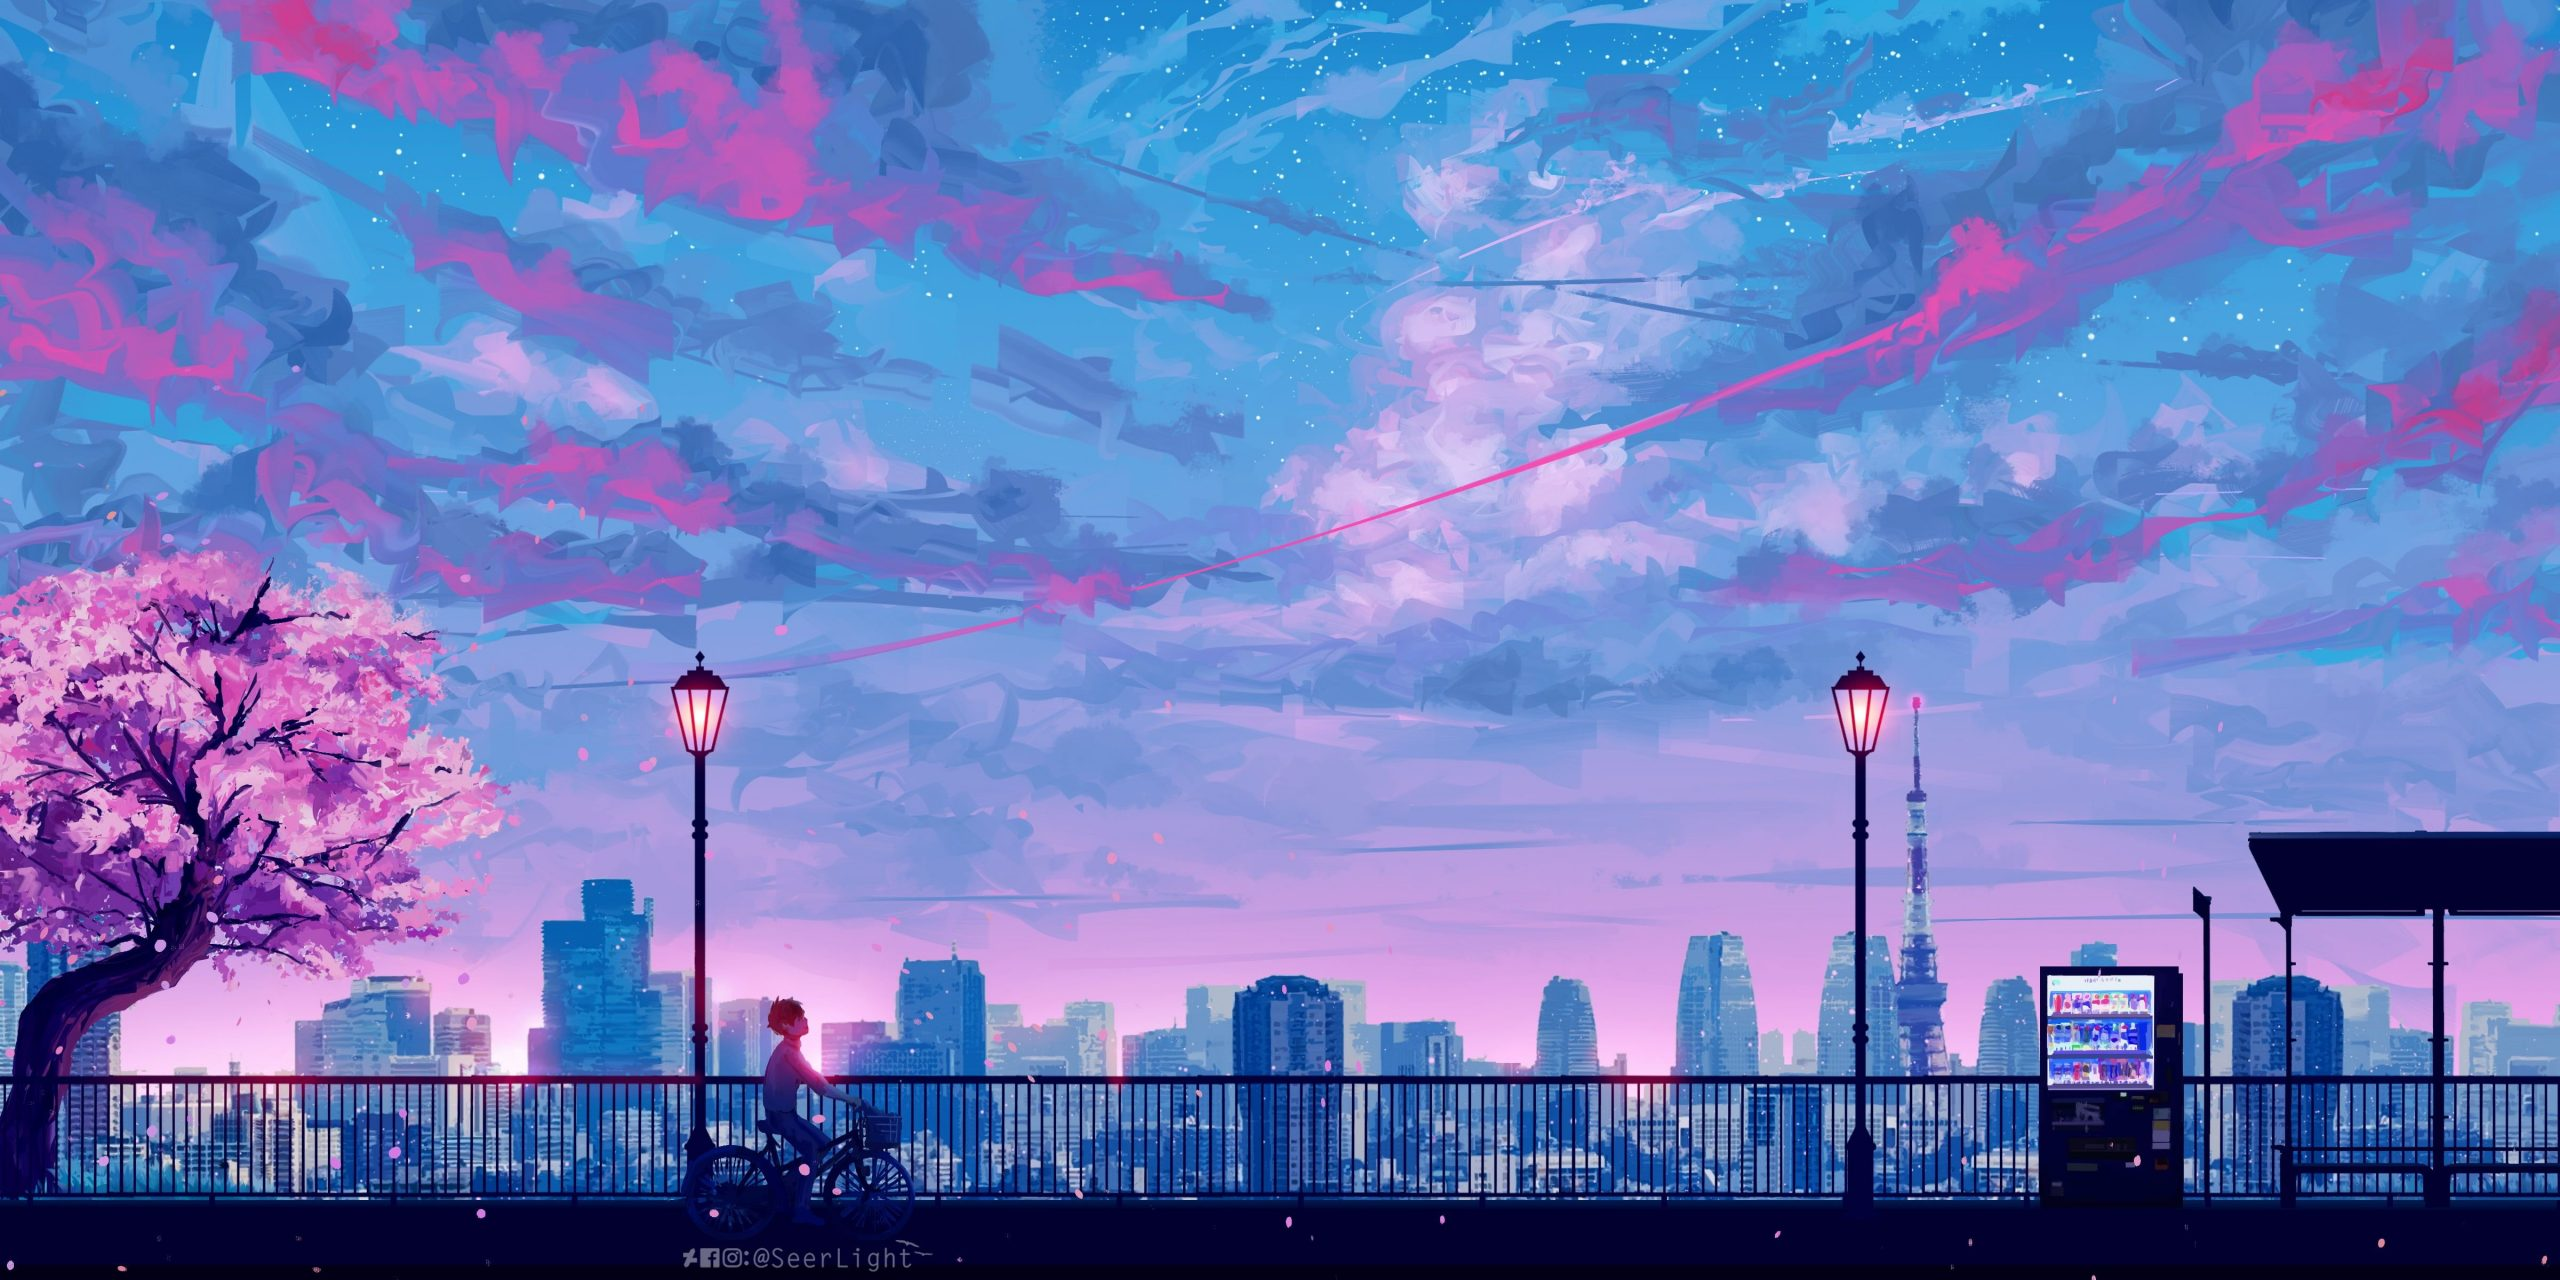 HD wallpaper silhouette of steel ridge wallpaper blue and pink sky painting